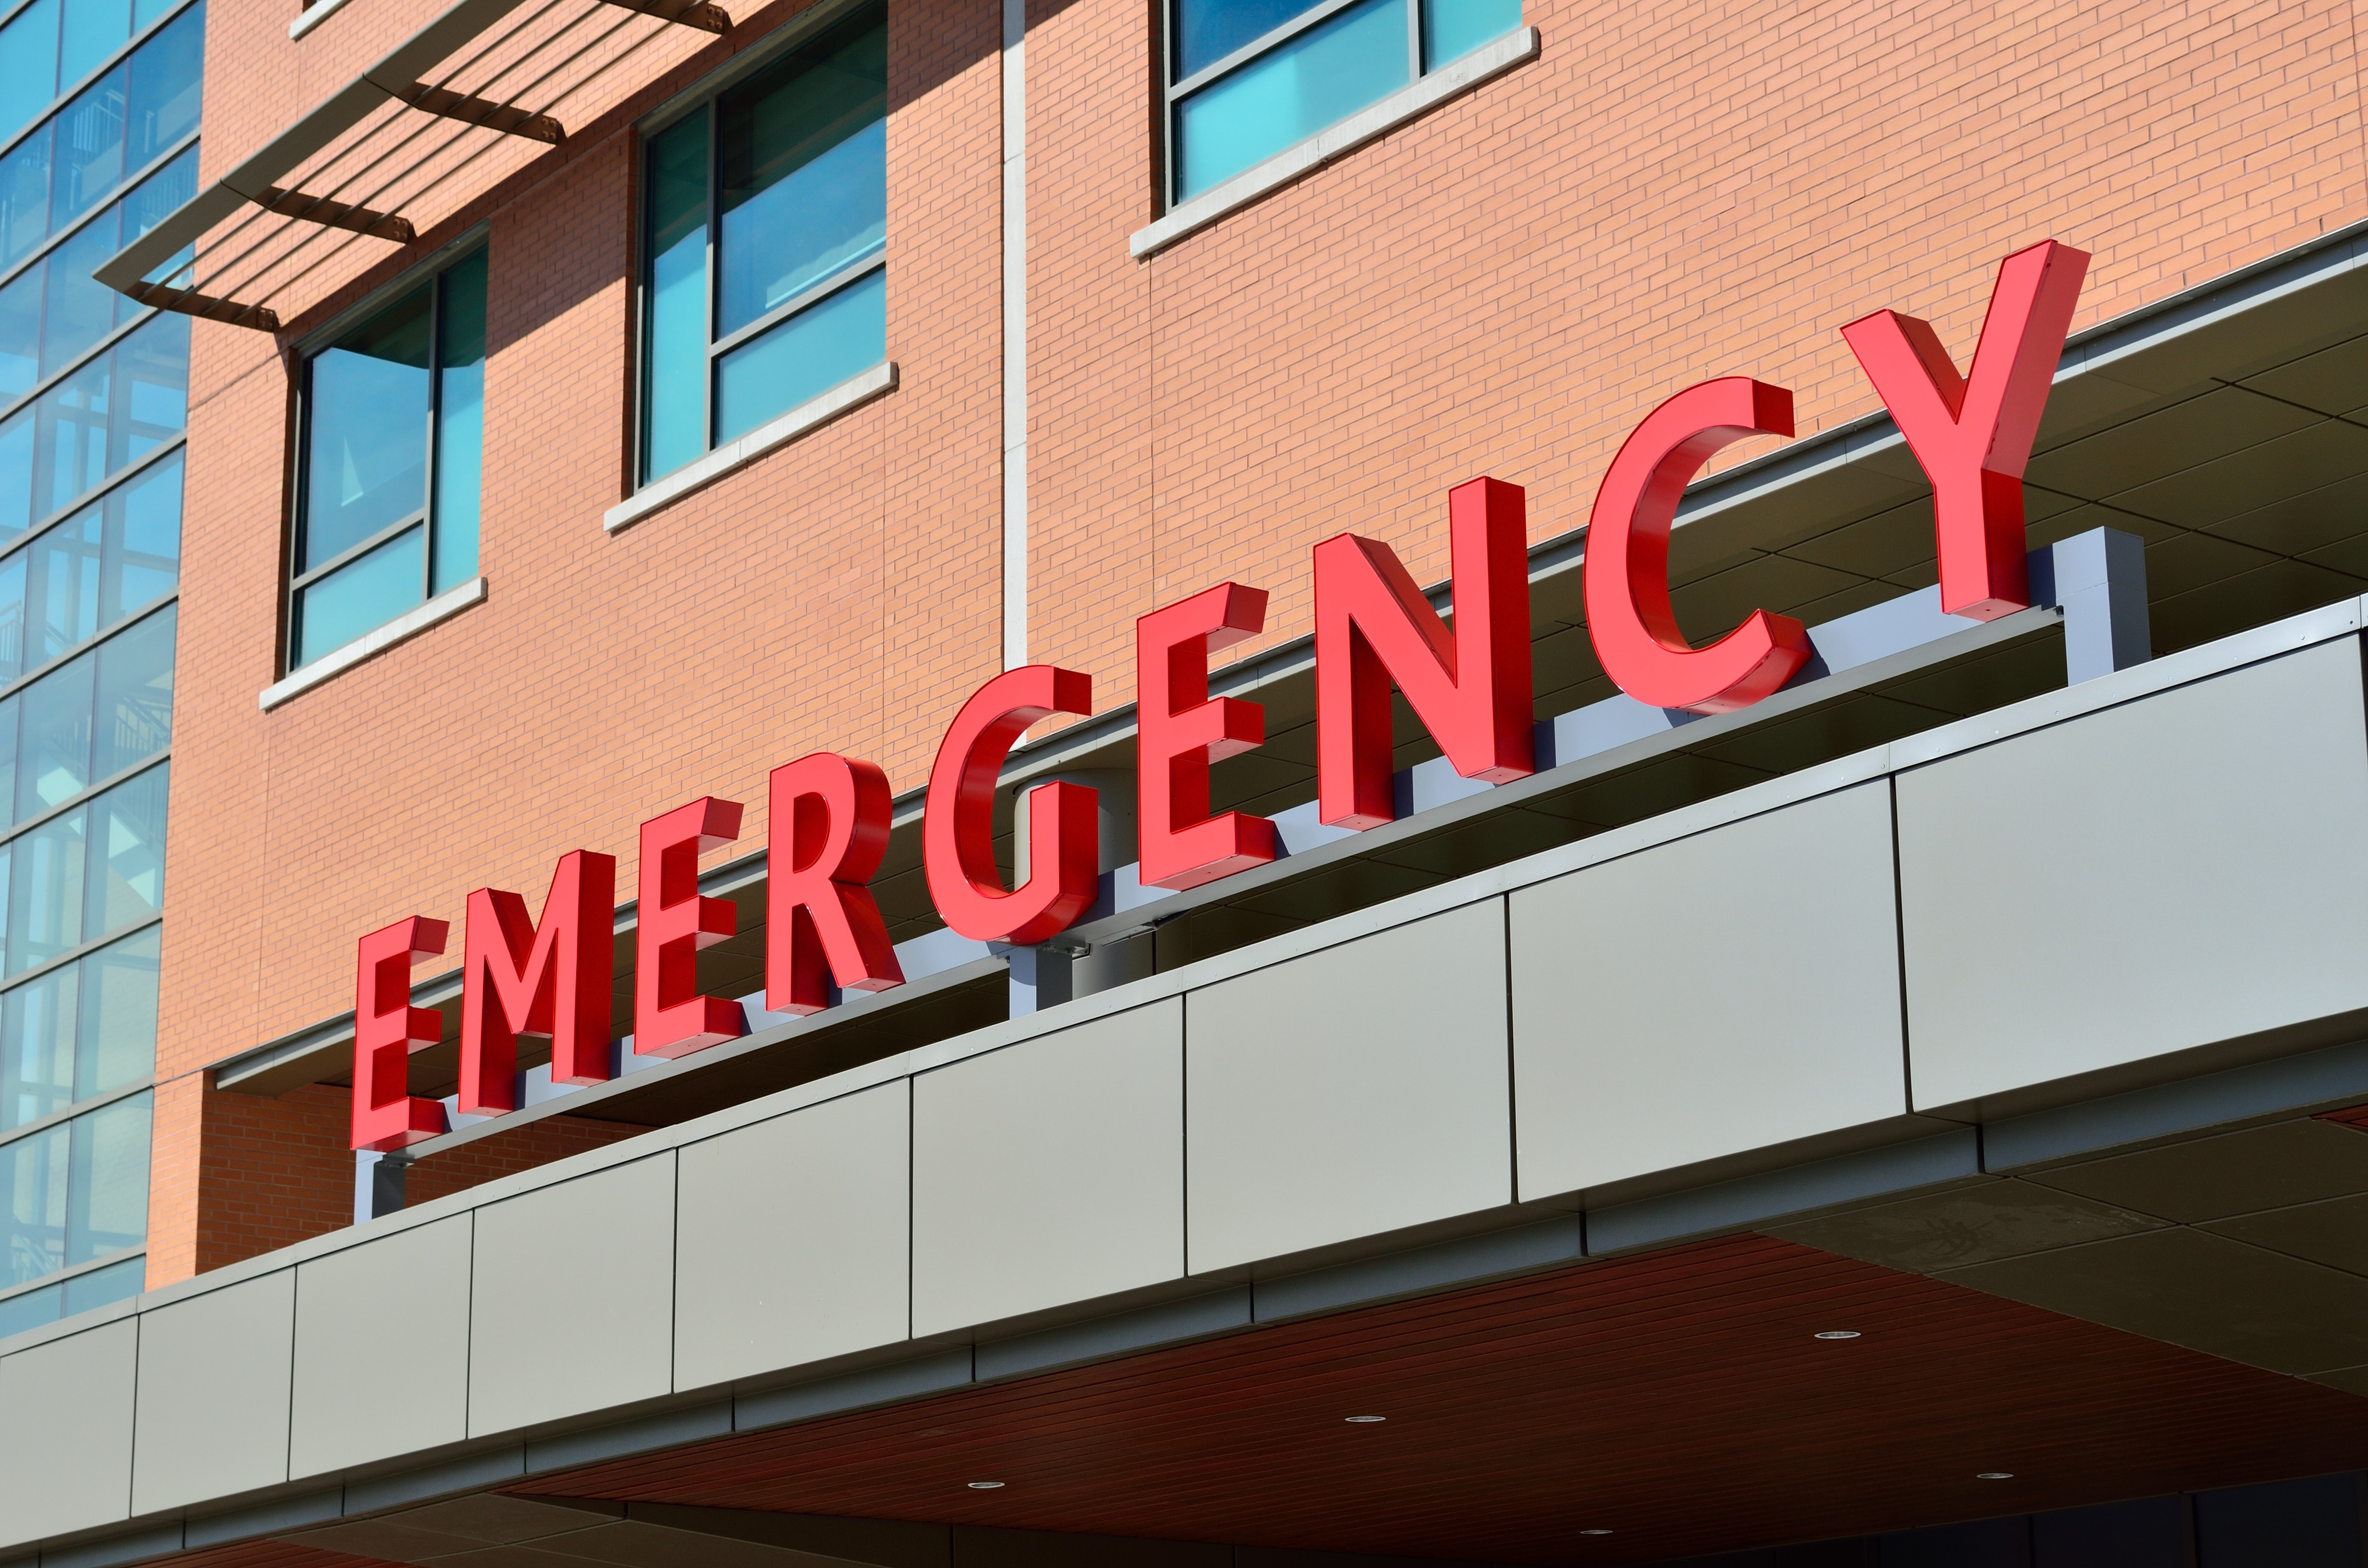 Unnecessary hospitalizations avoided with Teledermoscopy software